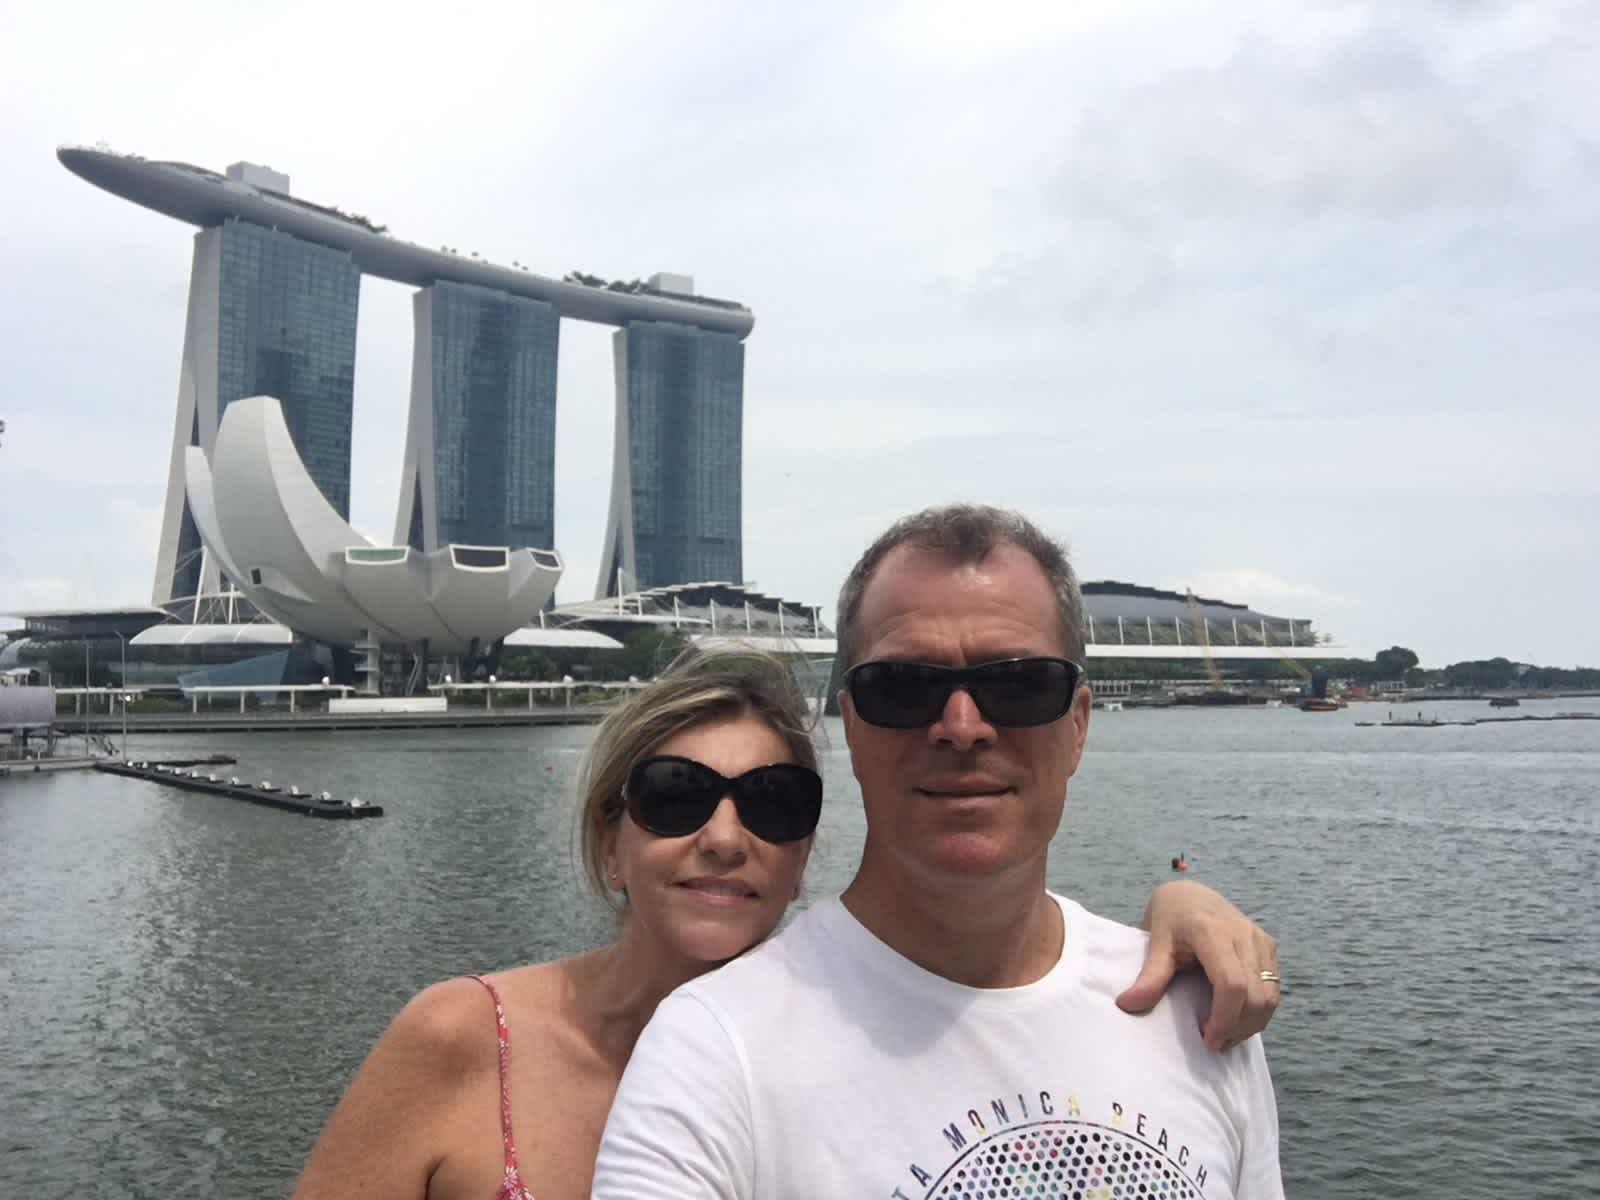 Martin & Tracey from Andover, United Kingdom